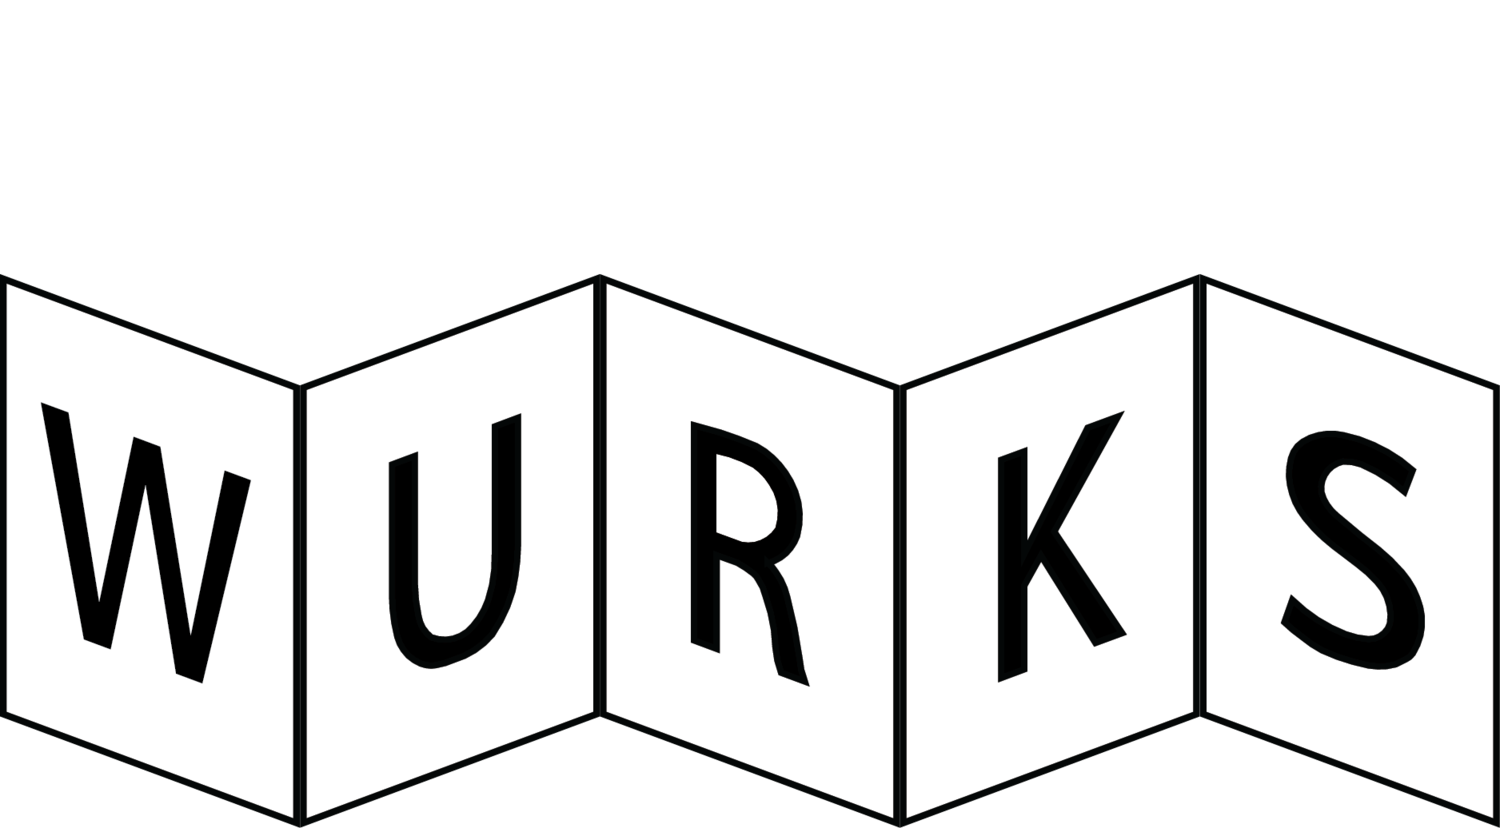 the Wurks